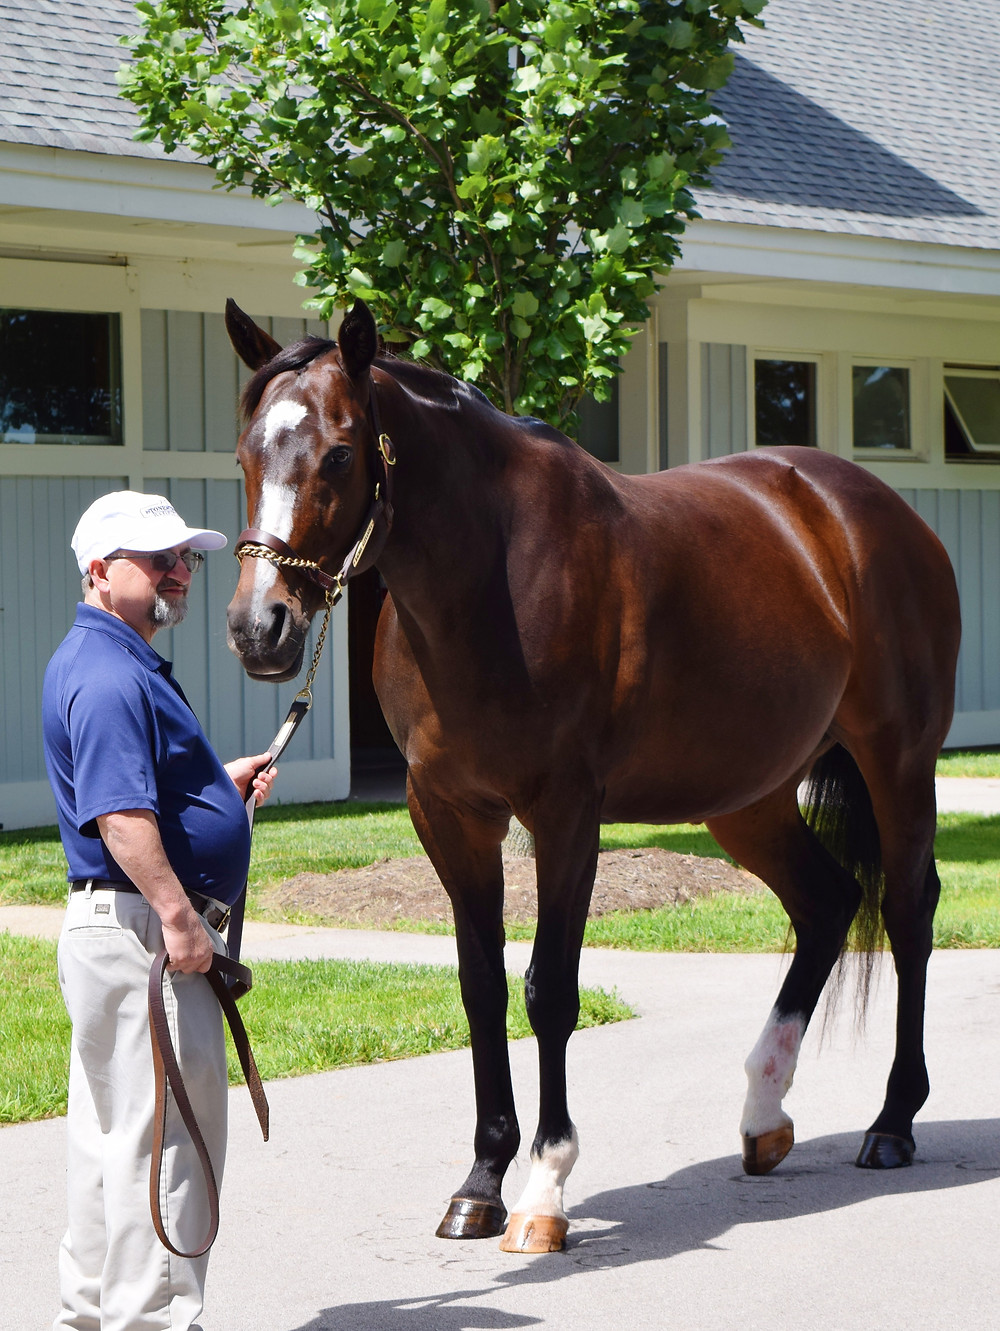 Rachel Alexandra, 2009 Horse of the Year. 2009 Kentucky Oaks and Preakness Stakes. Facts about Rachel Alexandra.